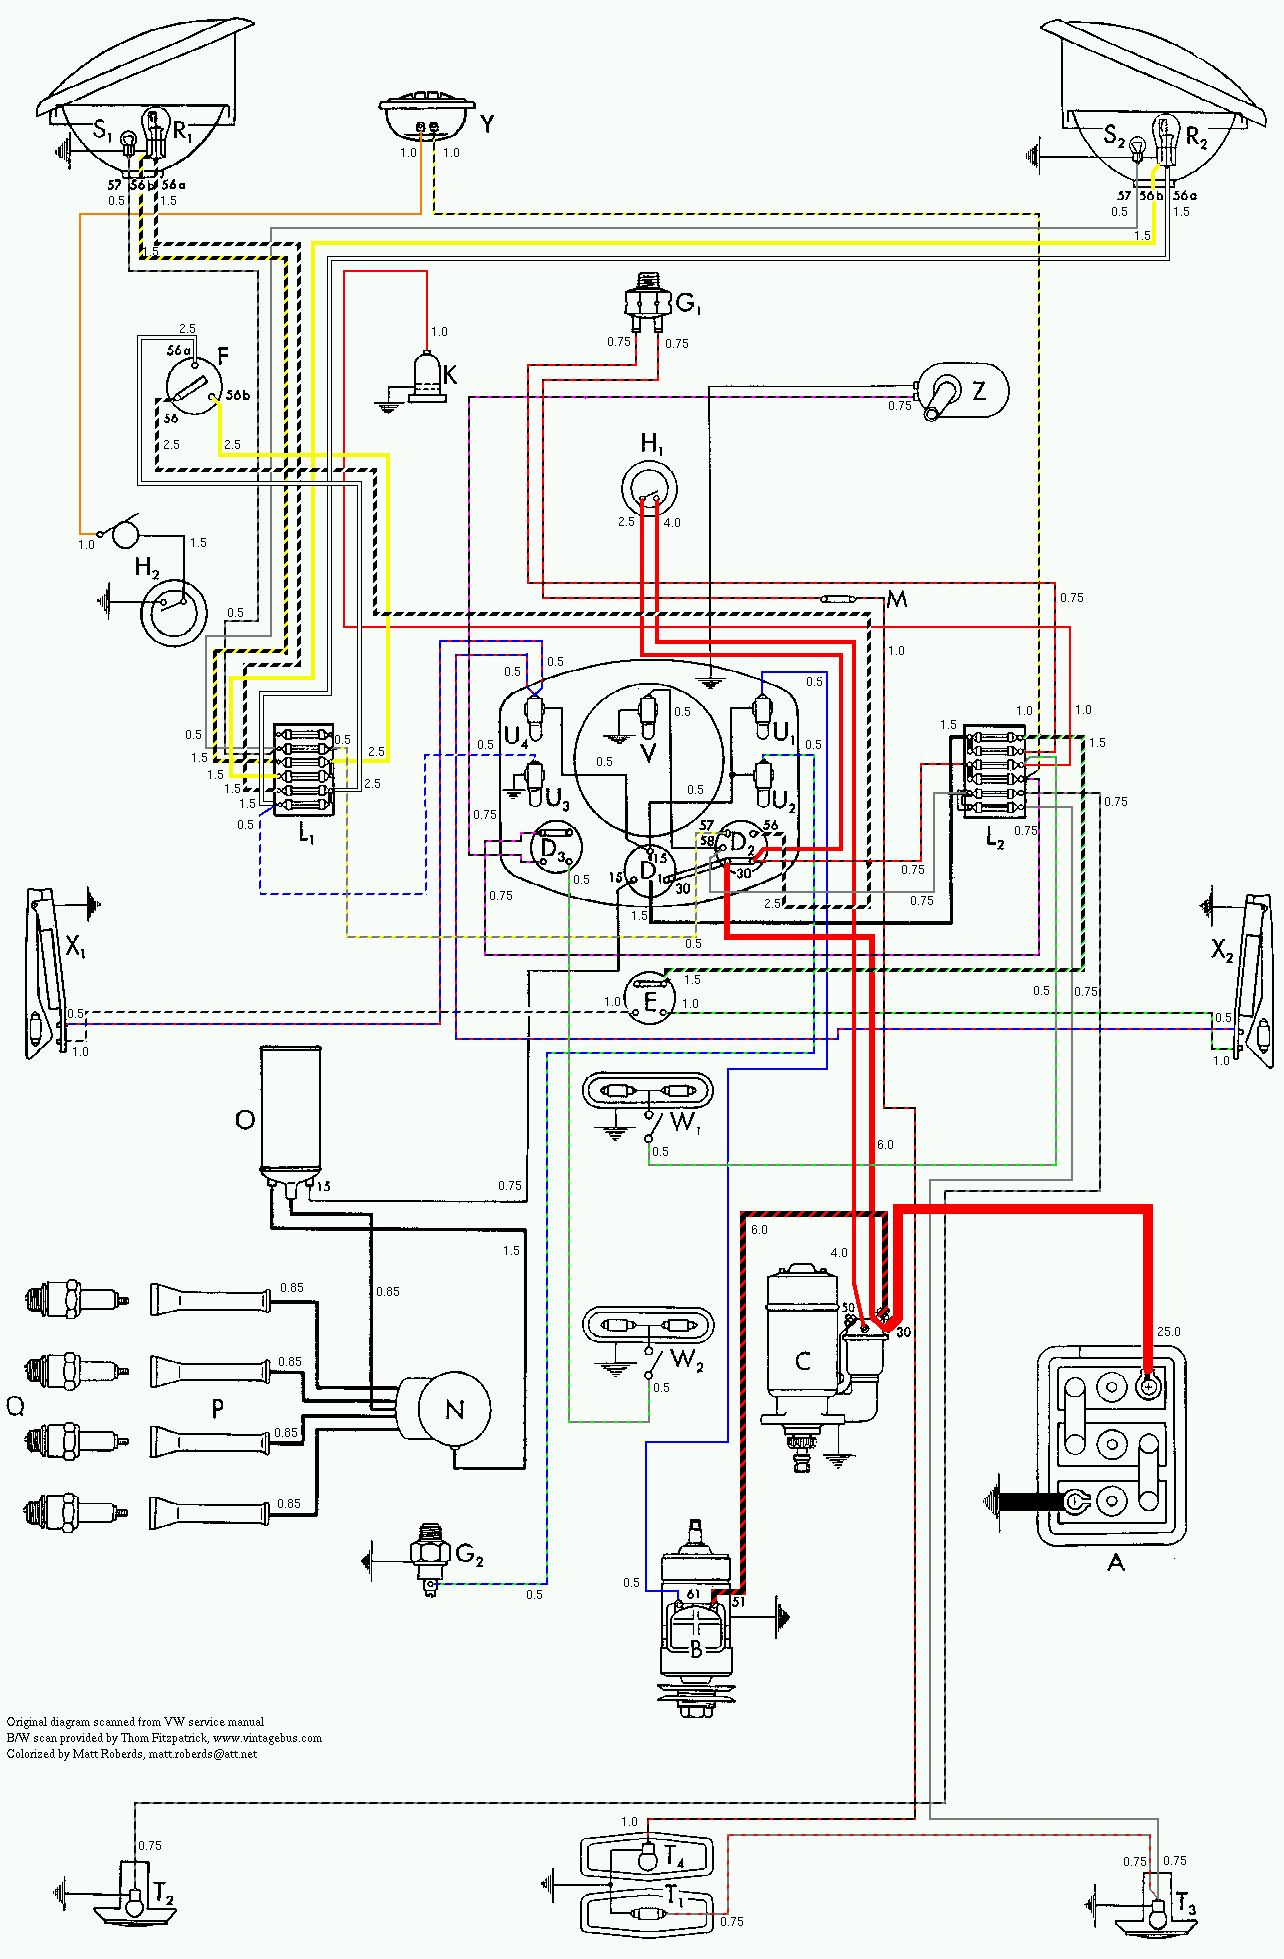 82 vanagon fuse box diagram photos wiring diagram Geo Fuse Box 82 vanagon fuse box diagram photos